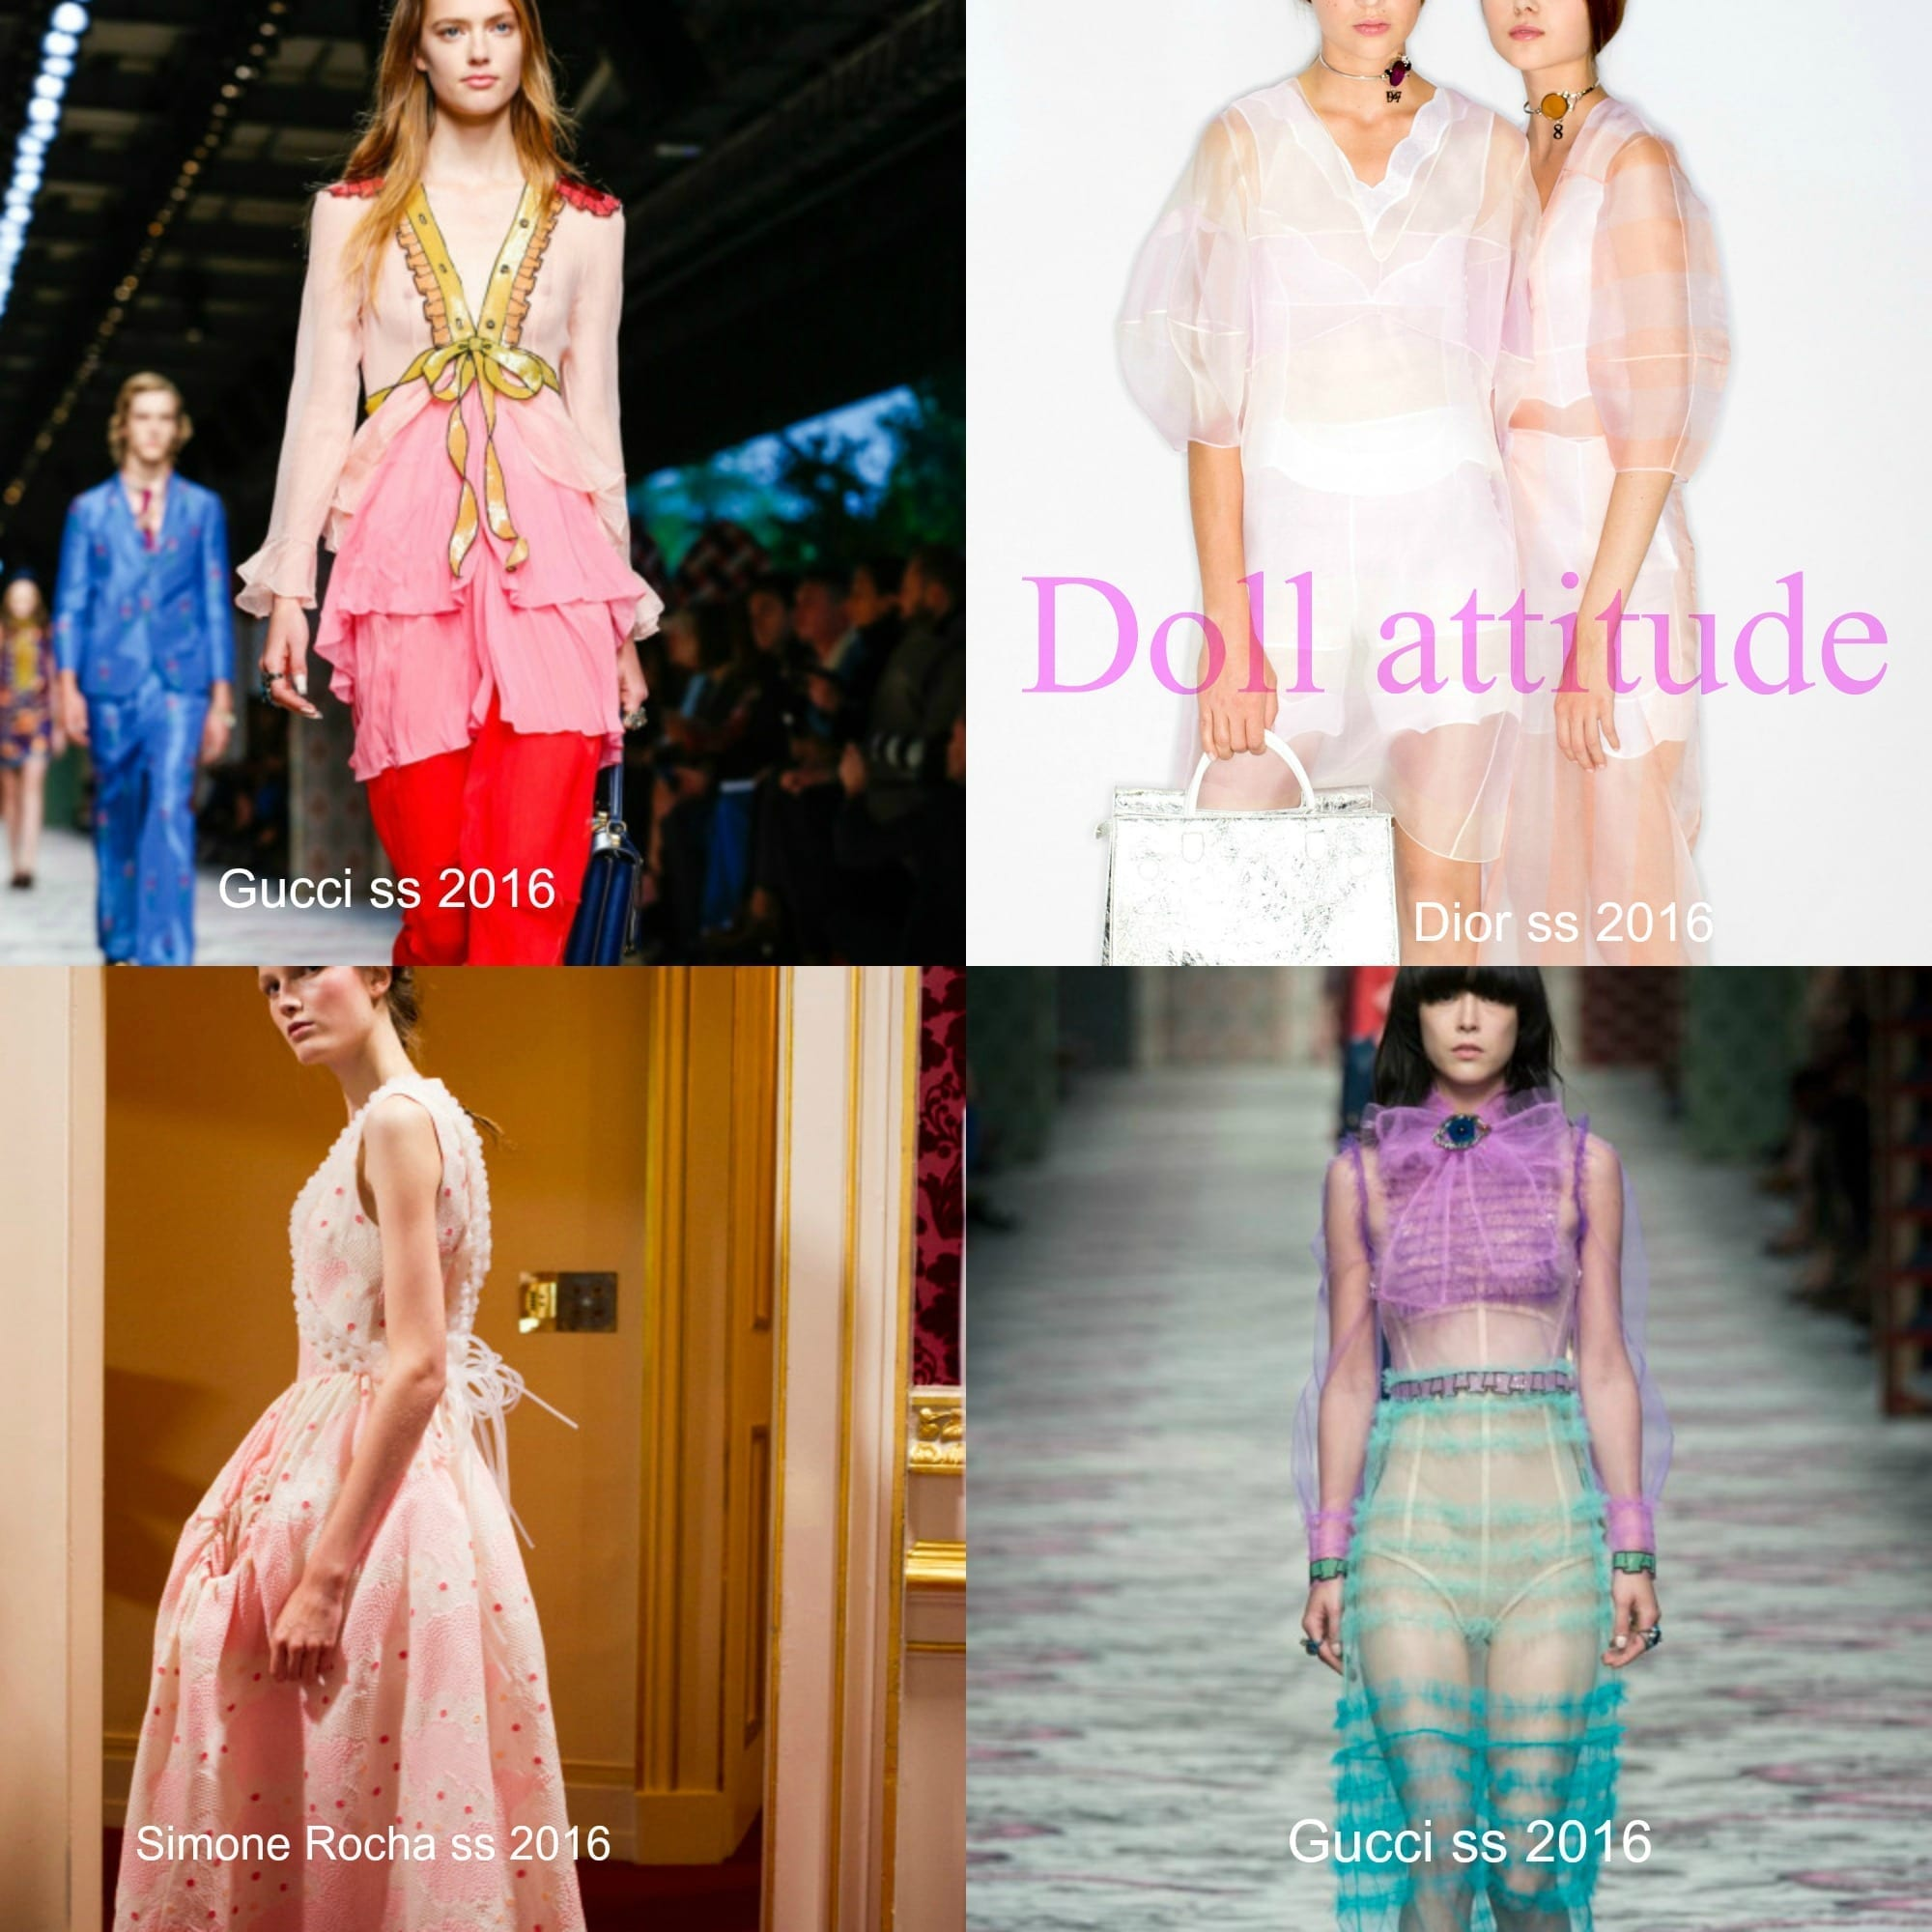 tendenze moda primavera estate 2016, gucci ss 2016, simone rocha, dior ss 2016, elisa bellino, theladycracy.it